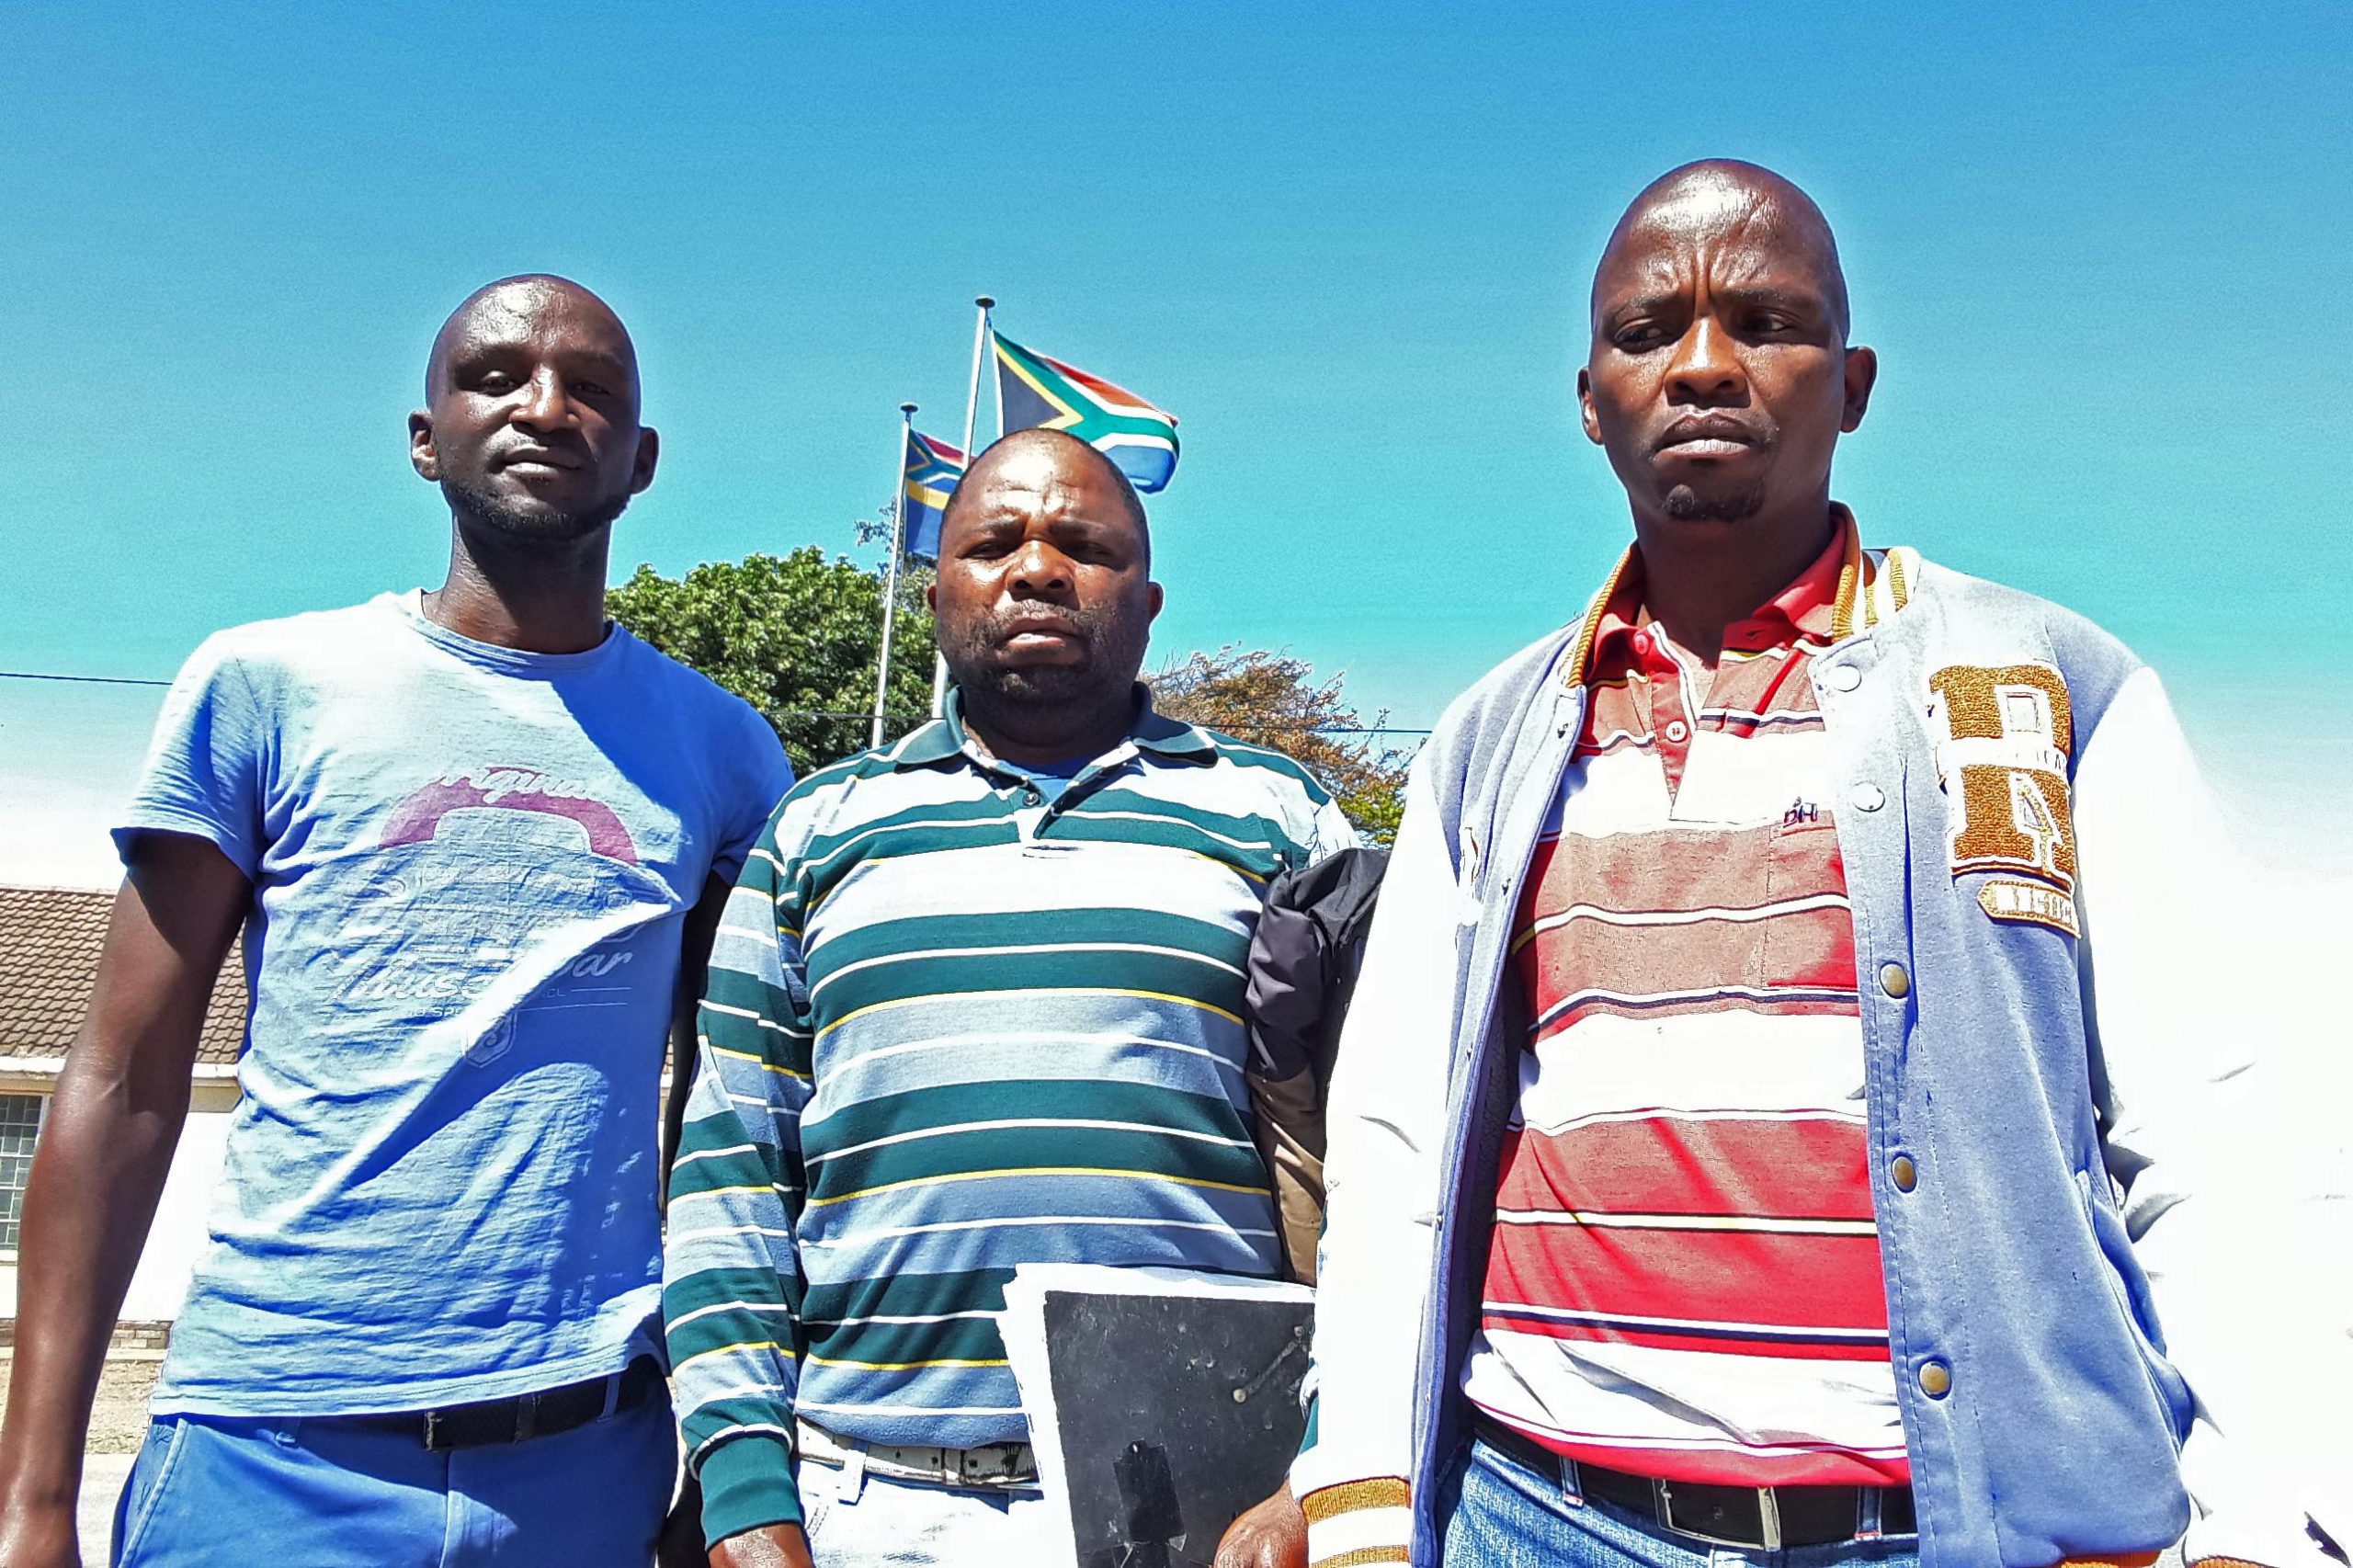 20 January 2020: From left, Kwazi Khumalo, Uzebekile Mani and Simphiwe Kwazi, steel workers who are taking a Nelson Mandela Bay company, Harlinco, to the Labour Court for unfair dismissal.